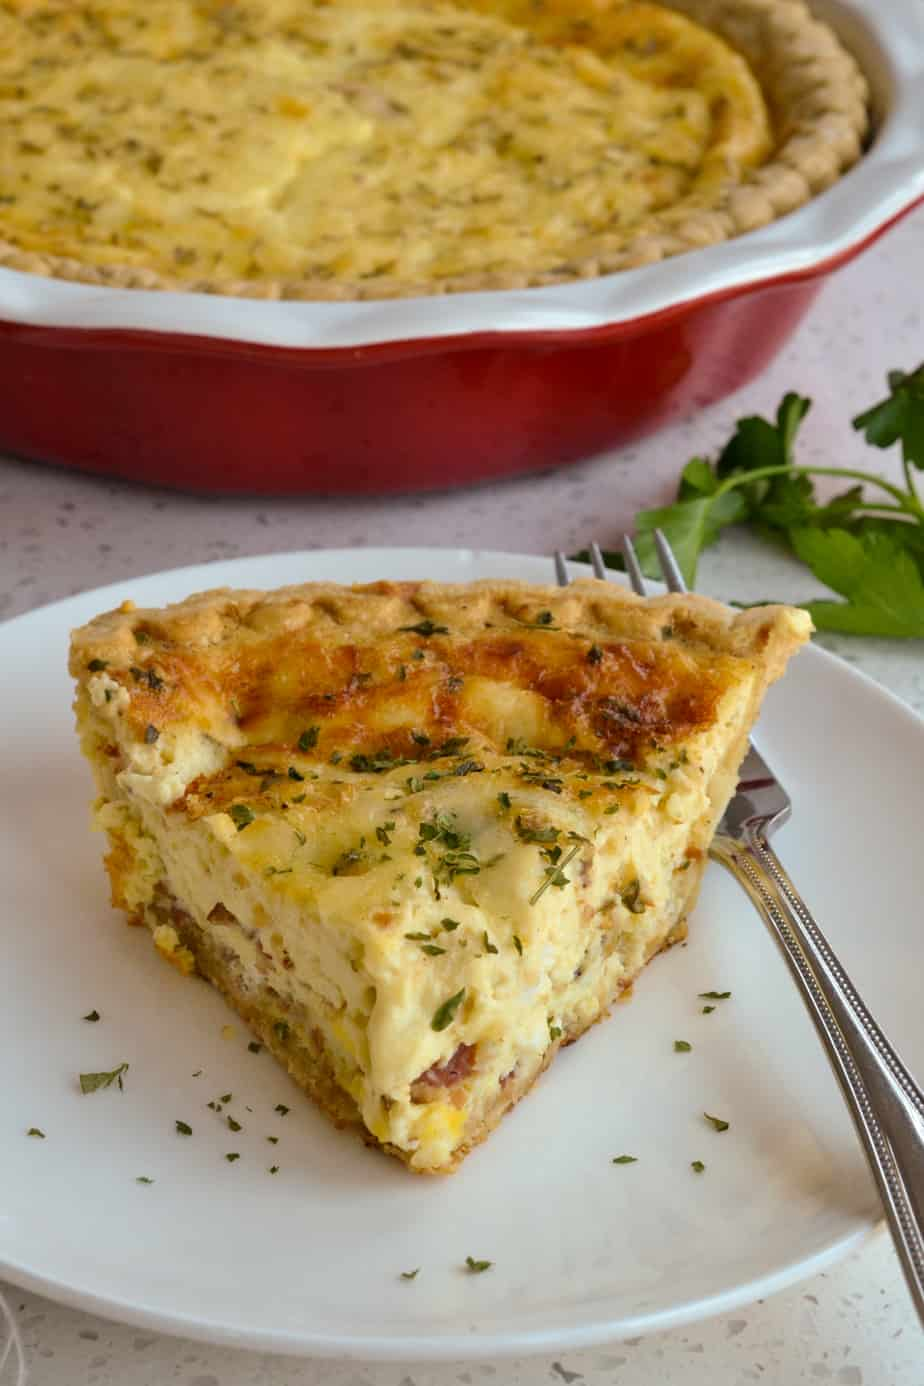 A piece of cheesy Quiche Lorraine on a plate.